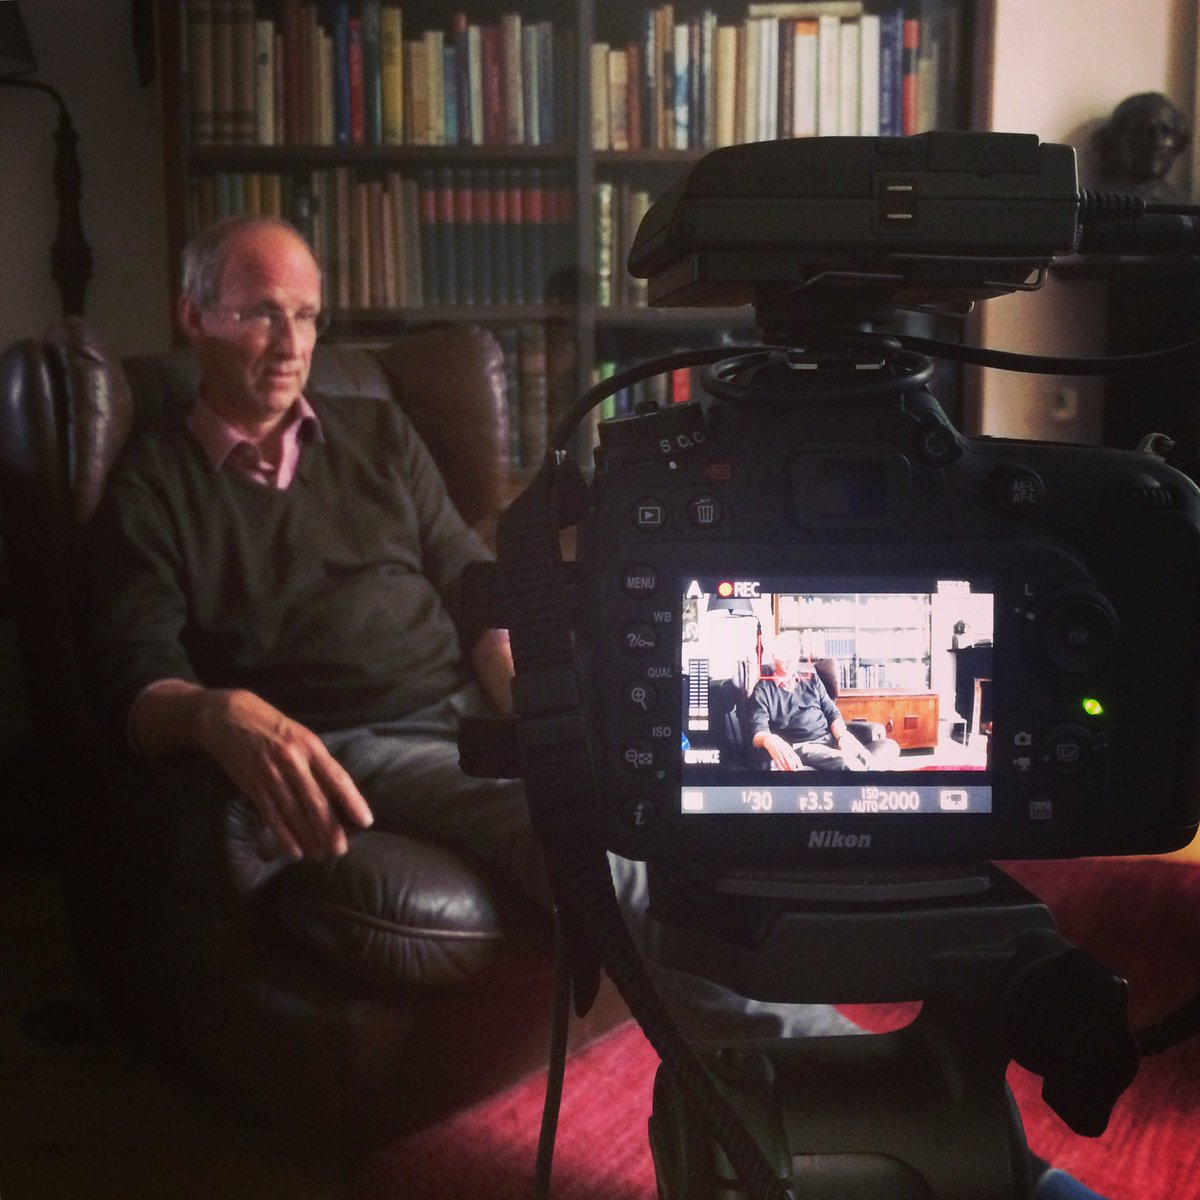 [NETHERLANDS] Yesterday, we interviewed Prof. Bert de Vries from @UtrechtUni  We continue our survey in Amsterdam !  #TREVE #REs #Europe<br>http://pic.twitter.com/9kBf8Nrcmv